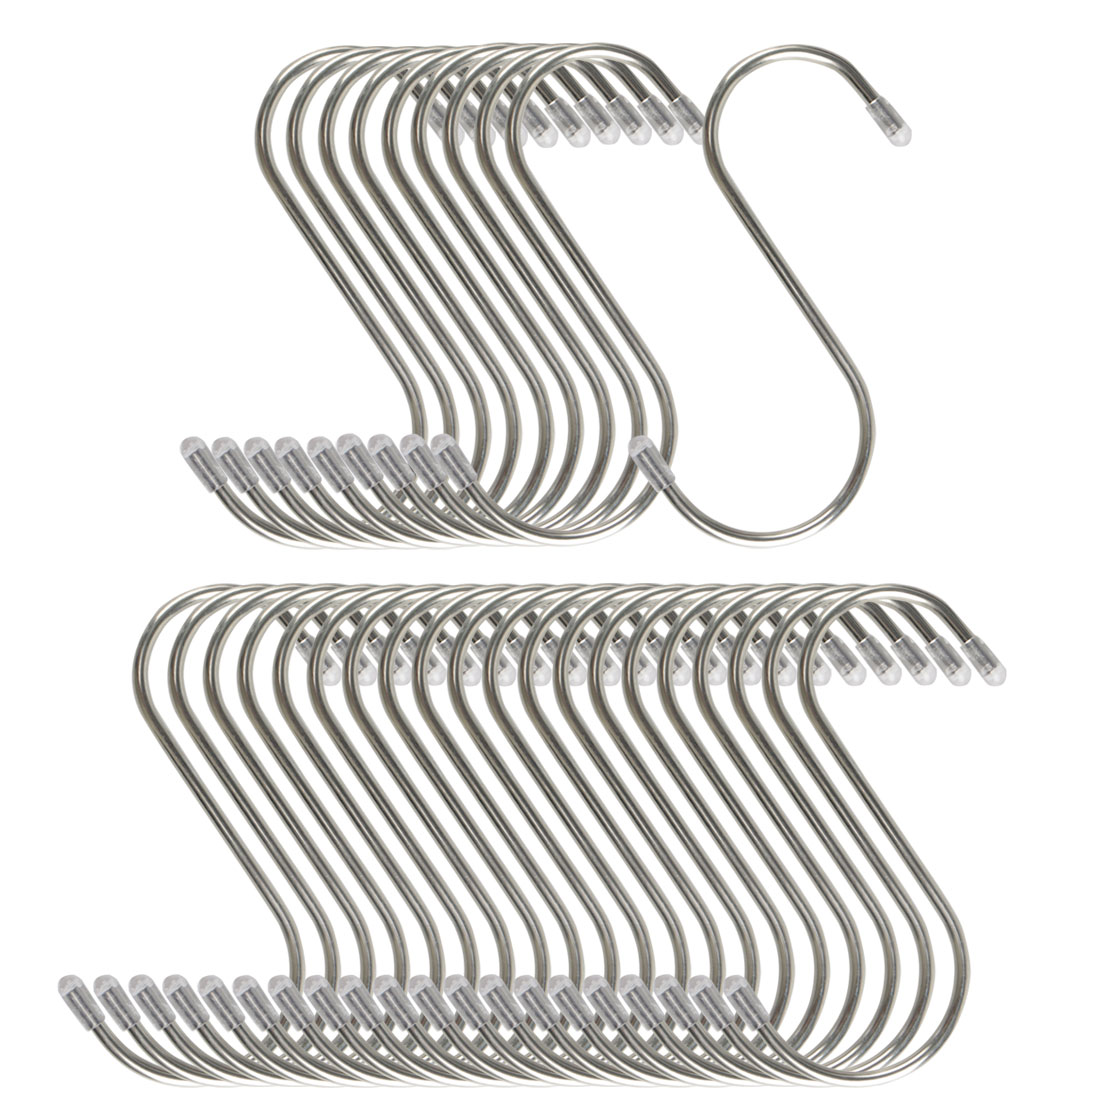 30pcs 4.72 Inch S Shaped Hook Stainless Steel for Kitchenware Hat Coat Holder